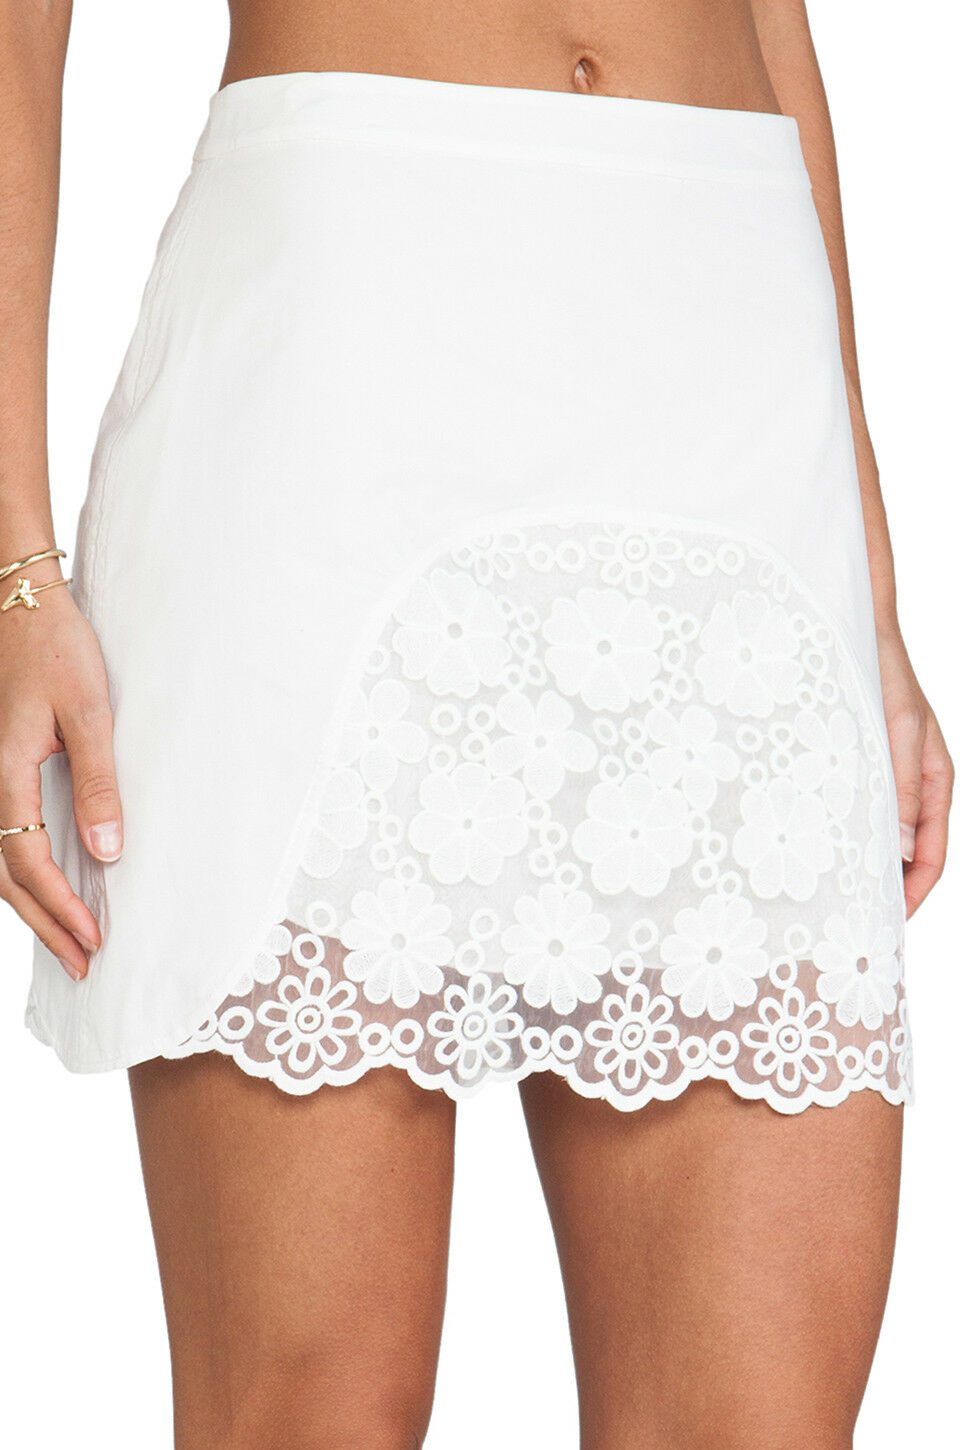 365 NEW See By Chloe Embroidered Voile Lace White Mini Skirt Eyelet US 2 US 4